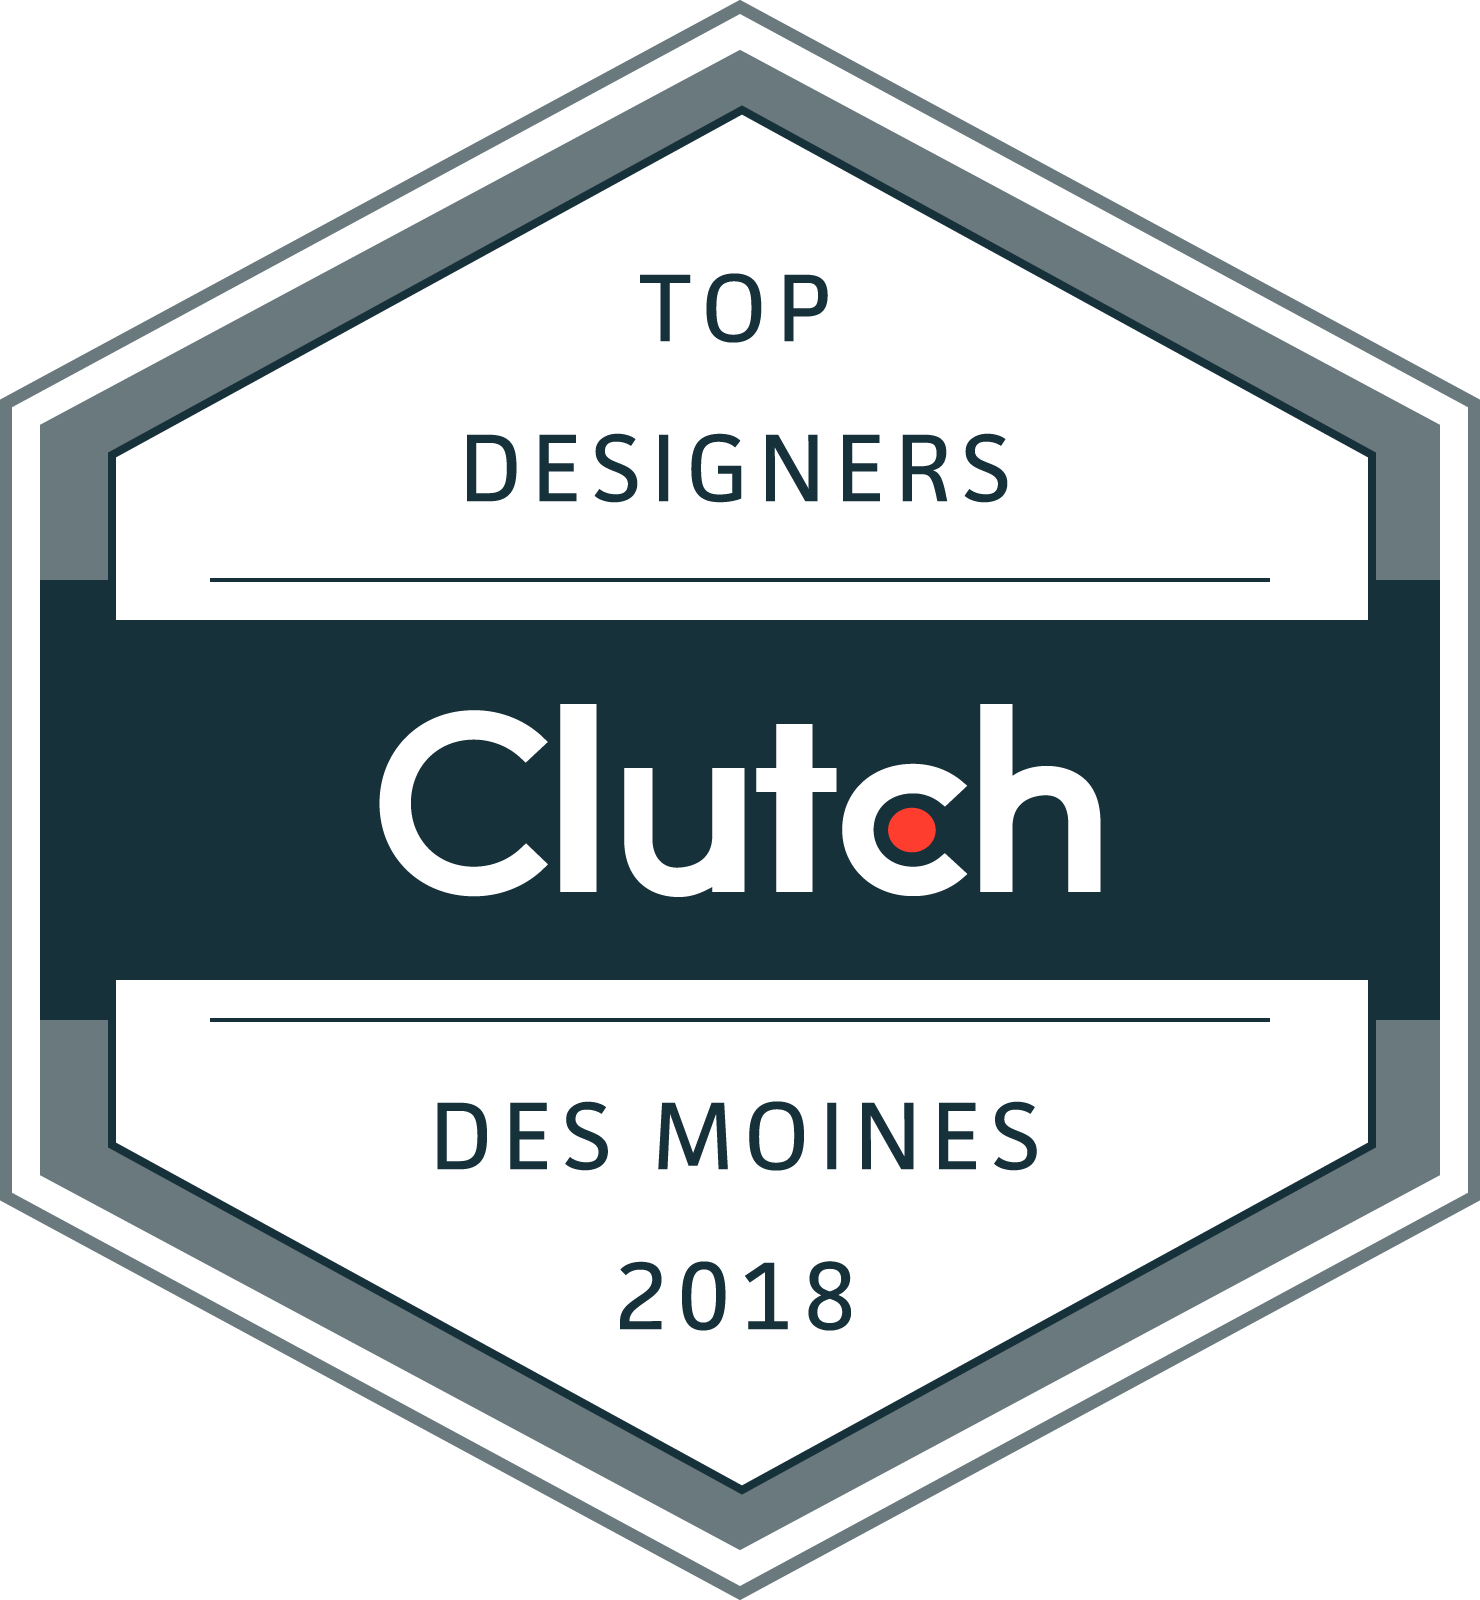 Top Designers in Des Moines